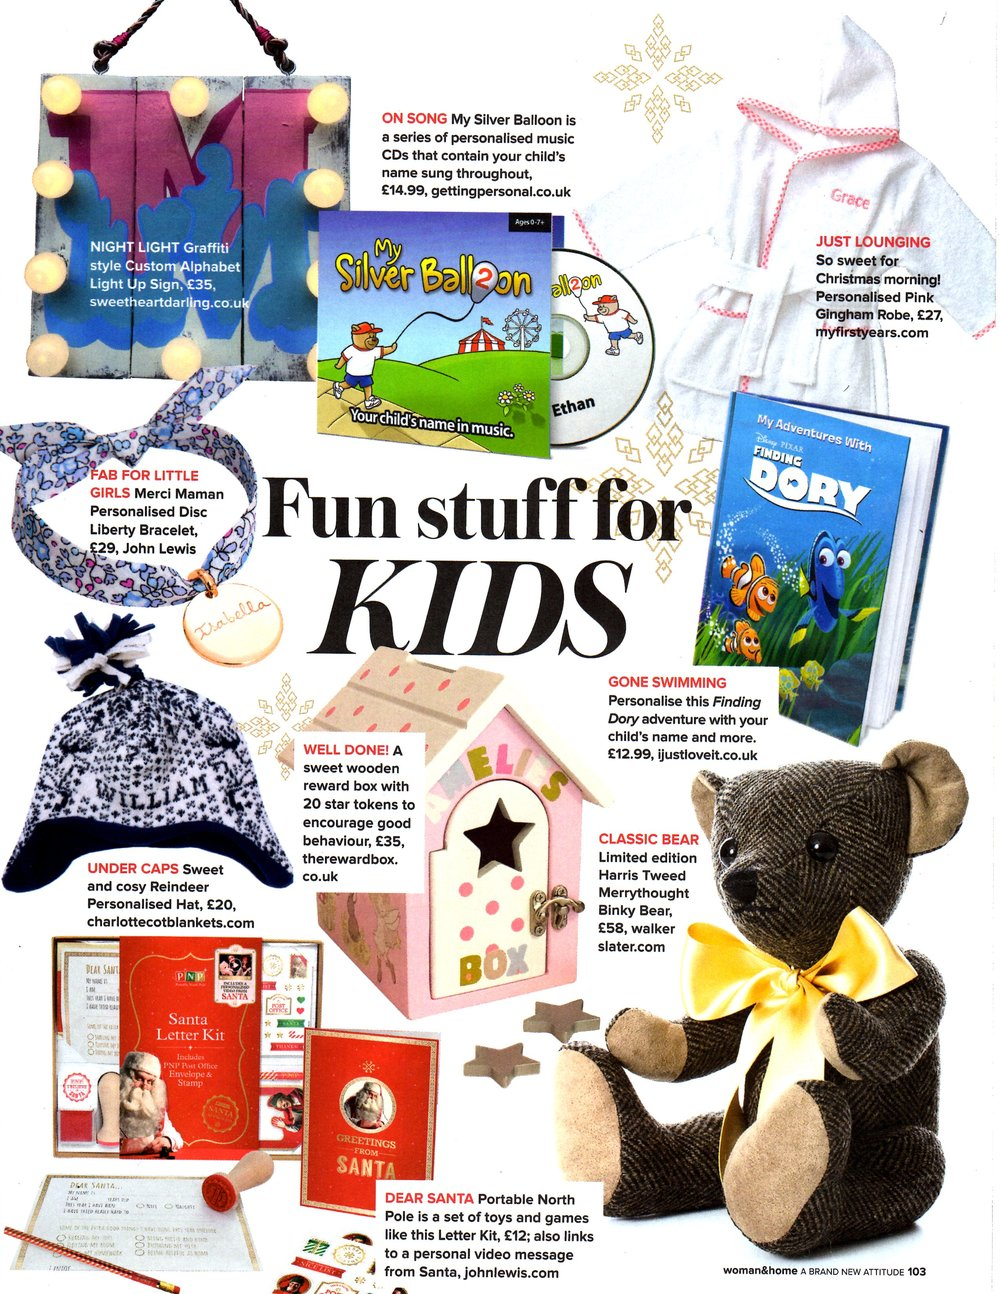 The November 2016 edition of 'Women and Home' has chosen The Reward Box as one of their picks for 'Fun Stuff for Kids'